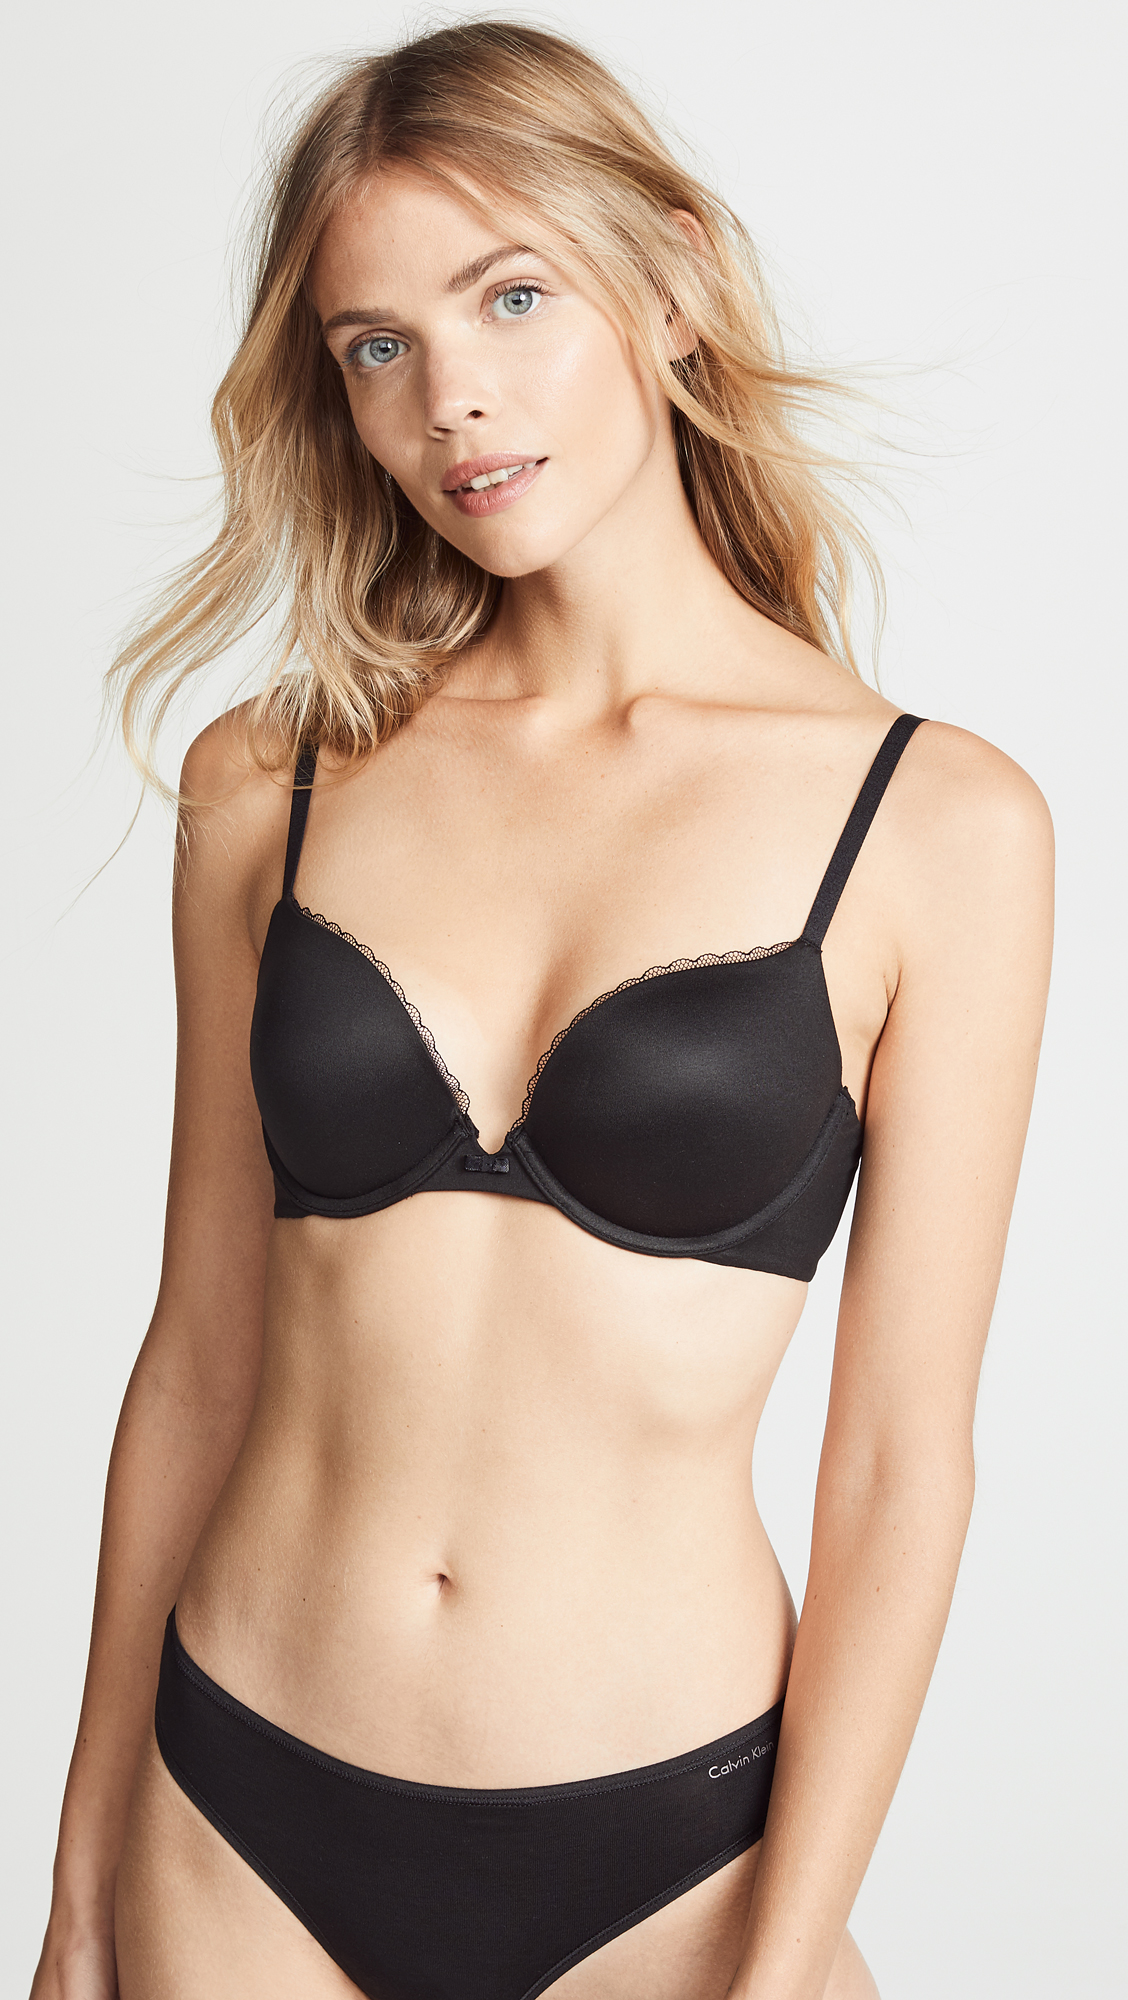 d82e5d1e243 Calvin Klein Underwear Everyday Calvin Plunge Push Up Bra